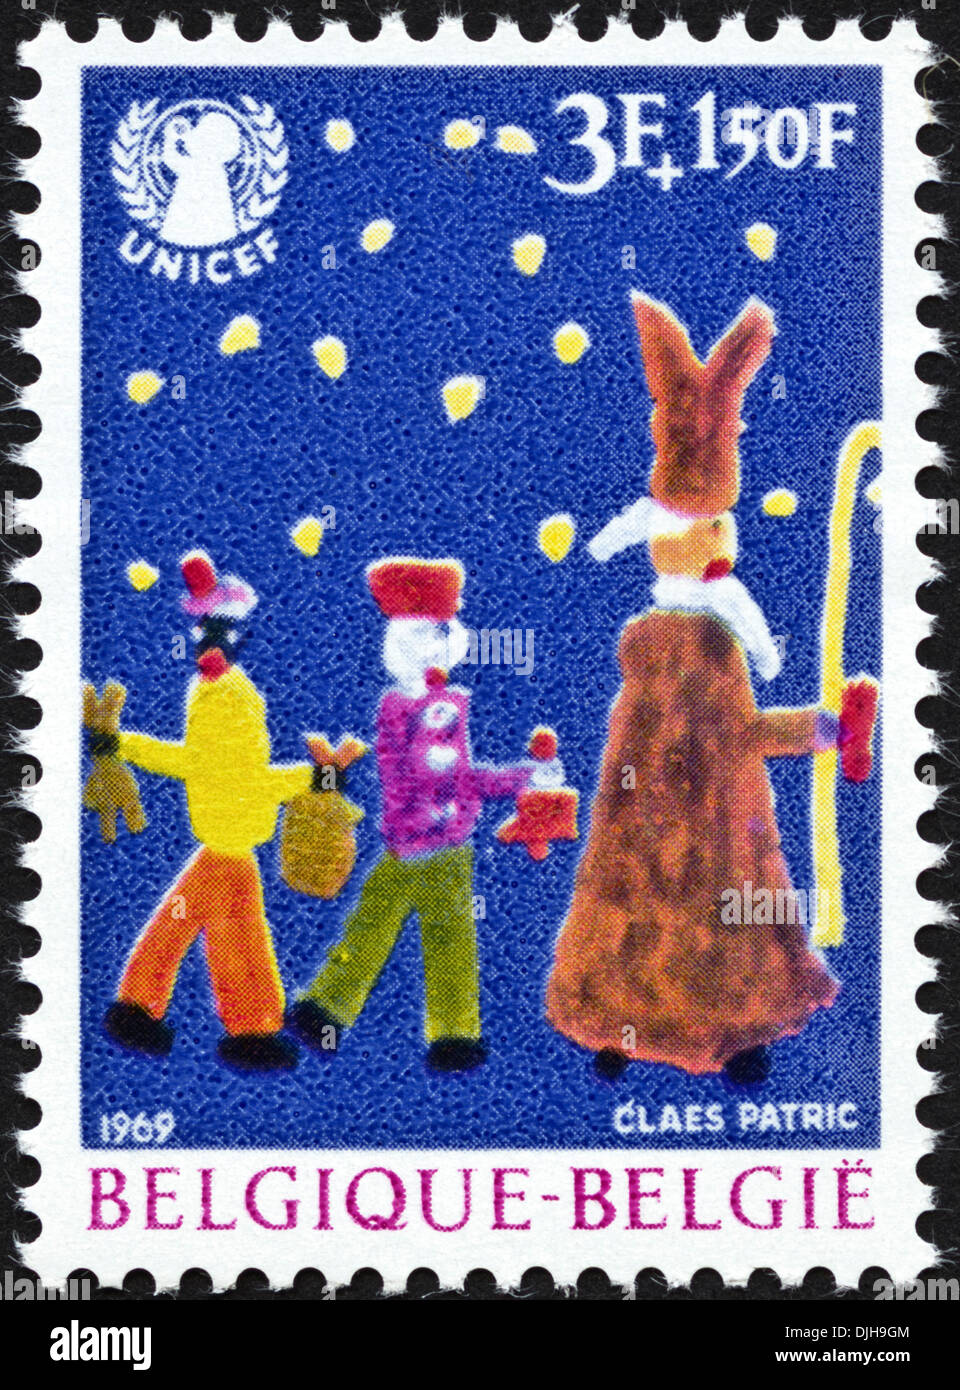 postage stamp Belgium 3F+1,50Ffeaturing UNICEF children's painting issued 1969 - Stock Image